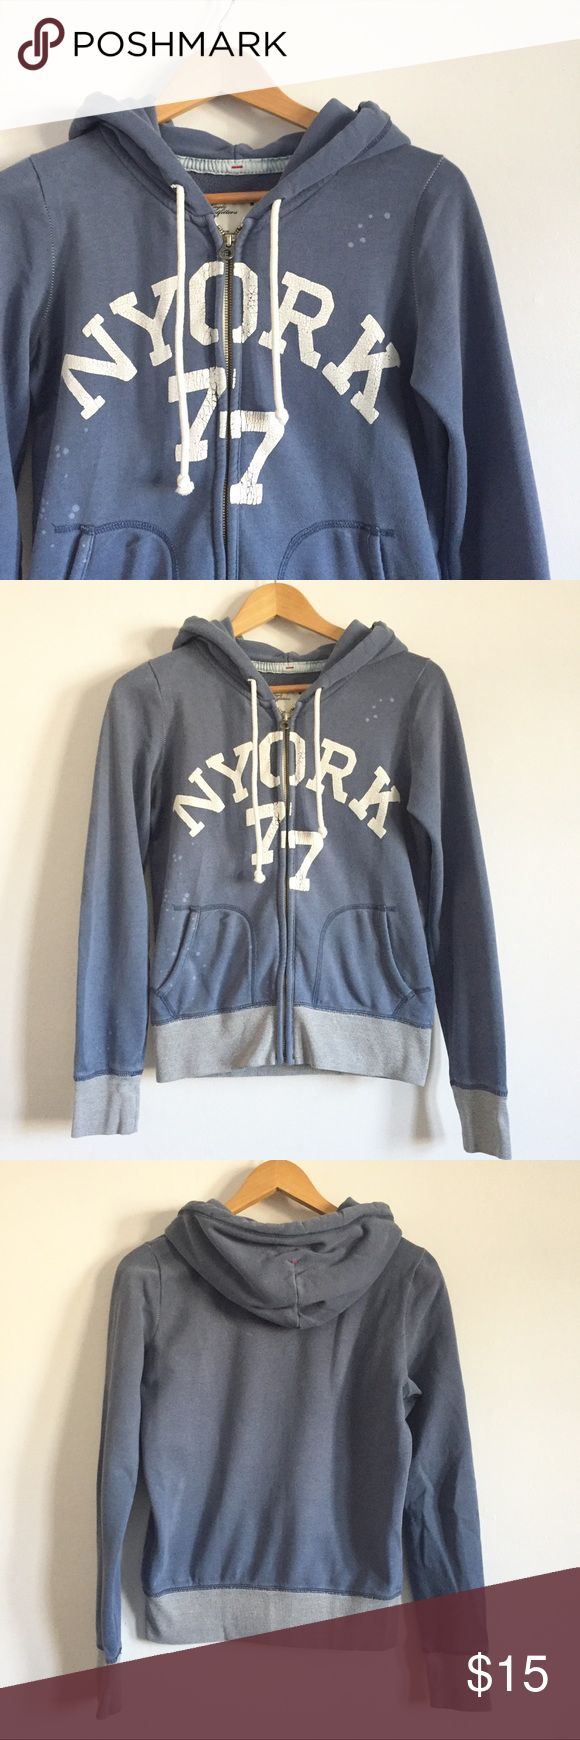 AE Blue NY Zip Up Sweatshirt Cute and cozy zip up sweatshirt from American Eagle. Light blue, white letters and stitching,and splattered bleach spots. Size small, 85% cotton, 15% polyester. Pre-lived, great condition! American Eagle Outfitters Tops Sweatshirts & Hoodies